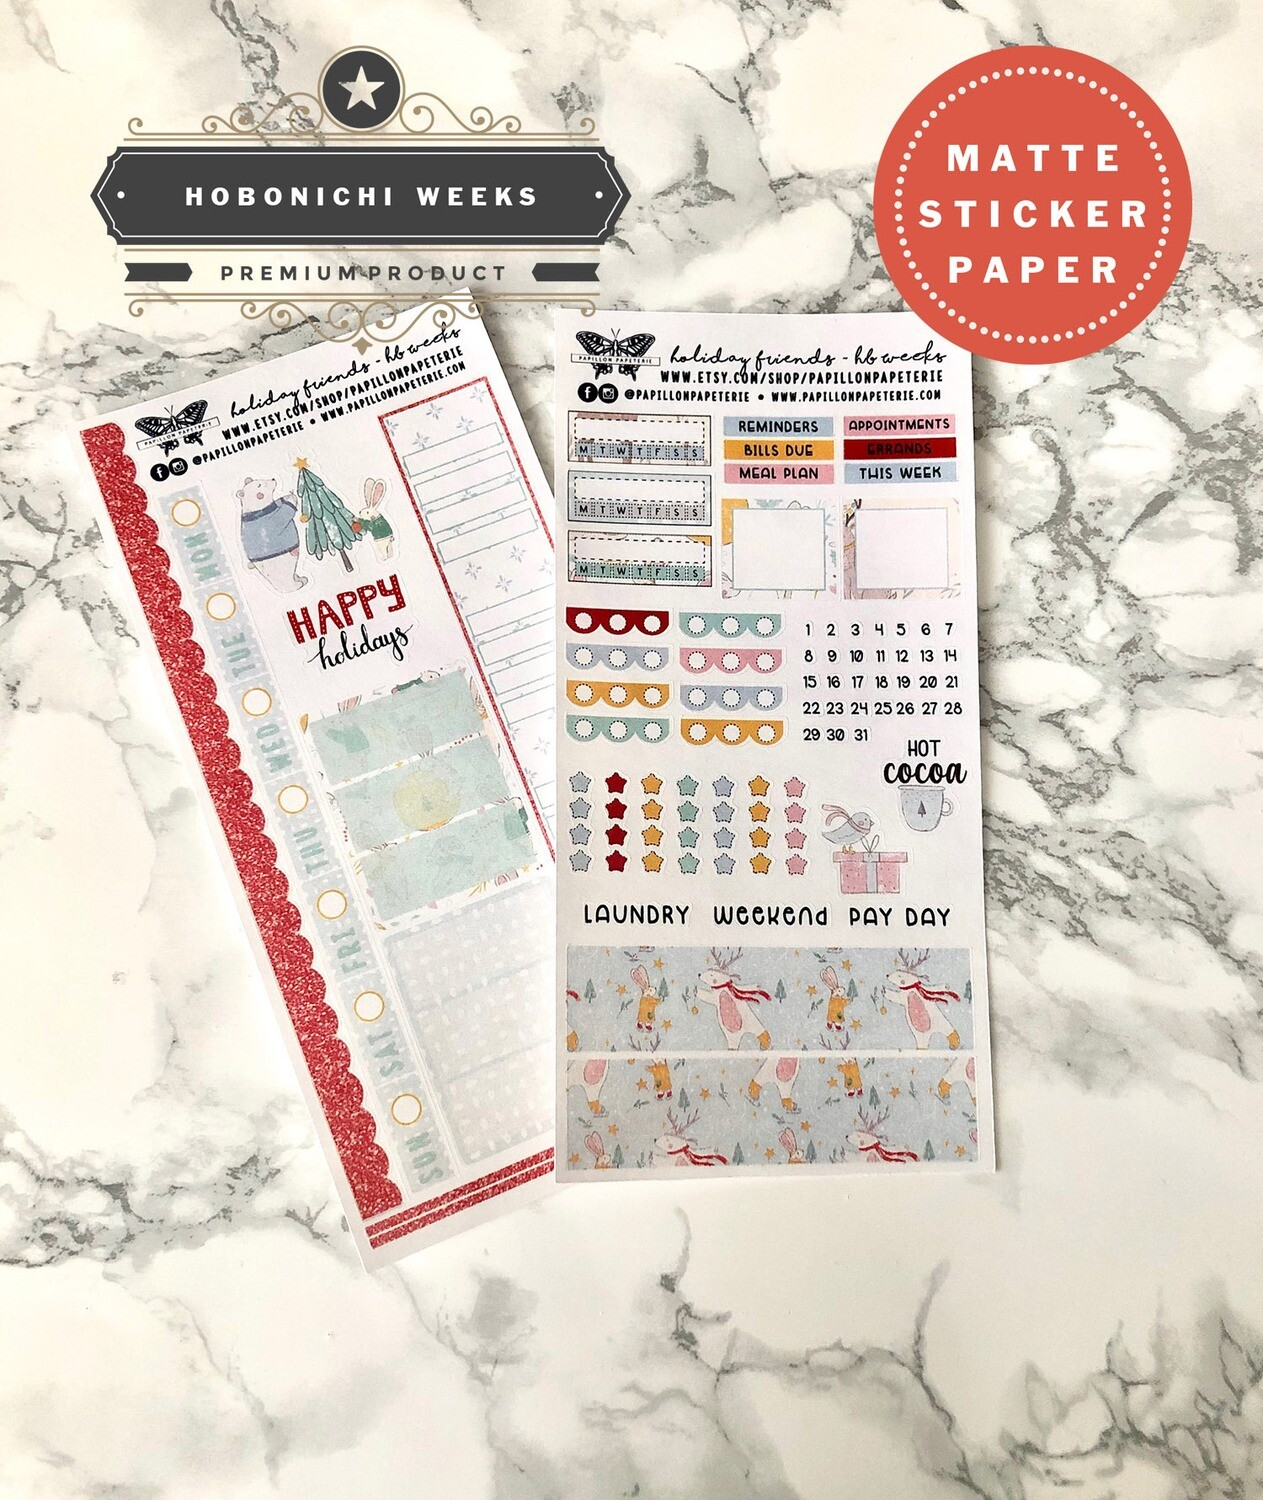 Holiday Friends Weekly Sticker Kit | Planner stickers for Hobonichi Weeks